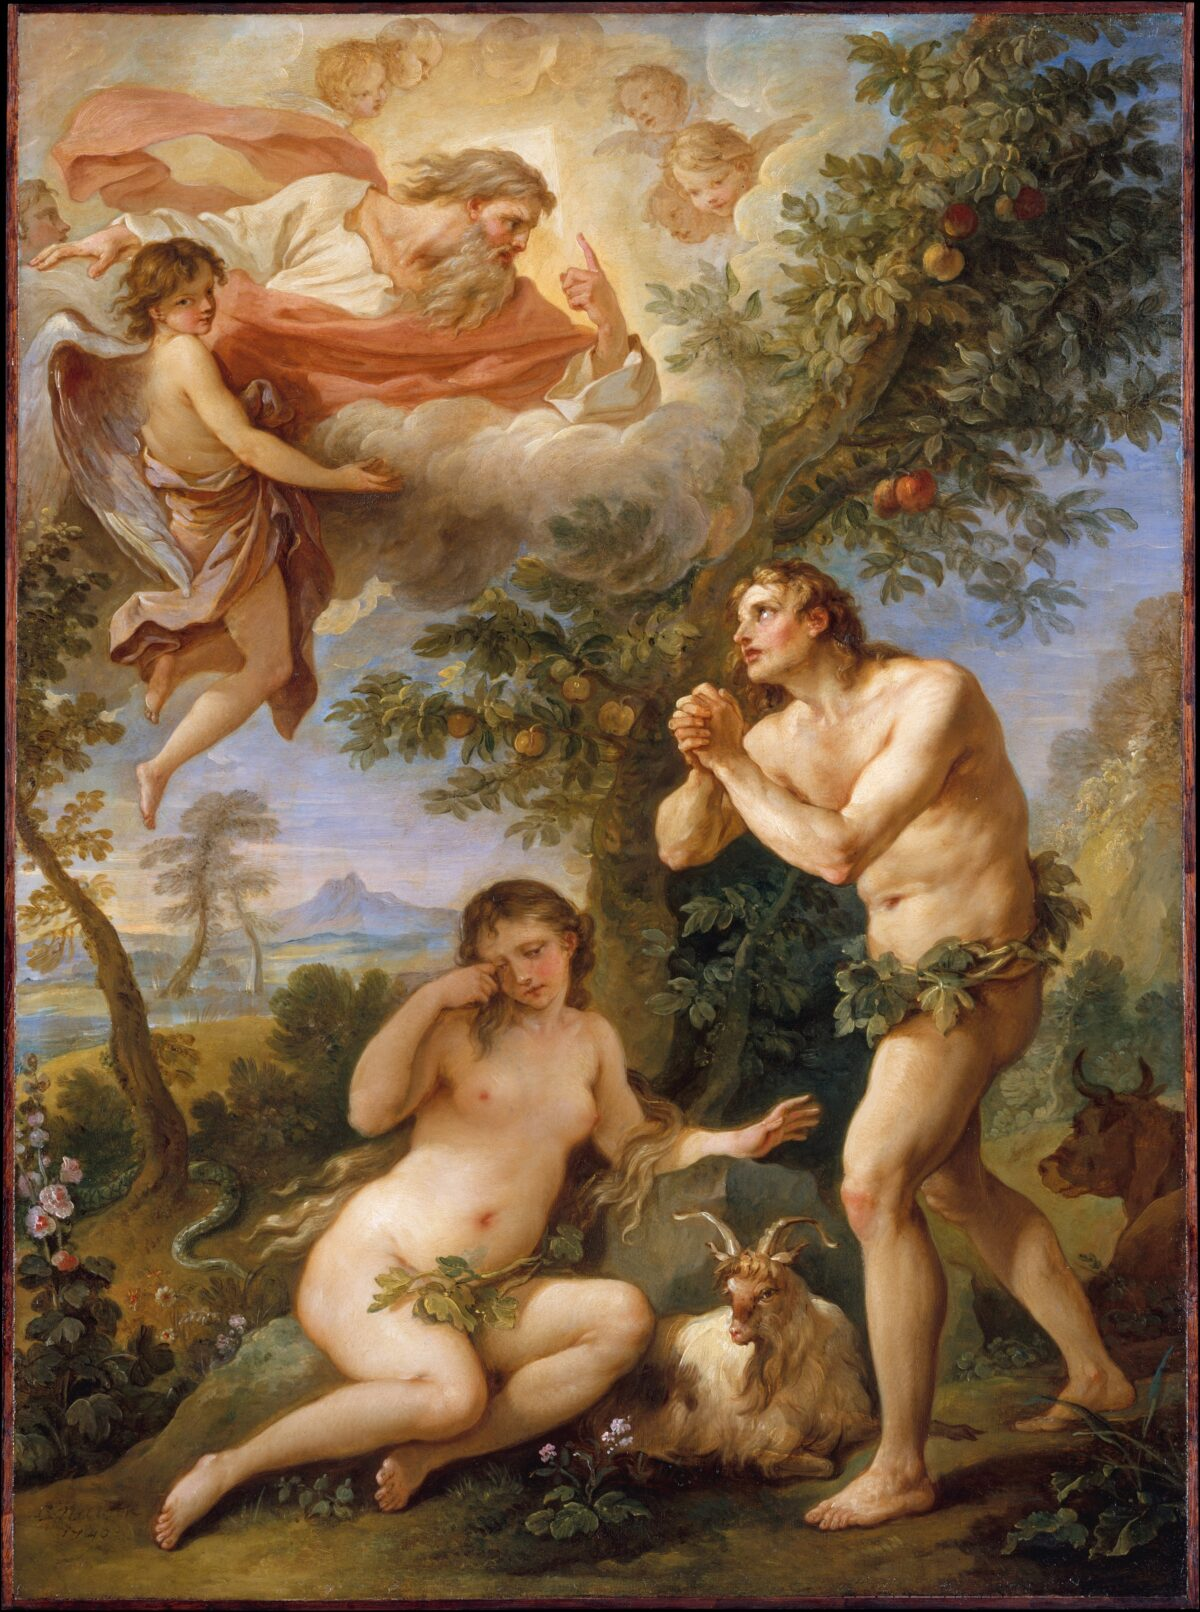 Rebuke of Adam and Eve